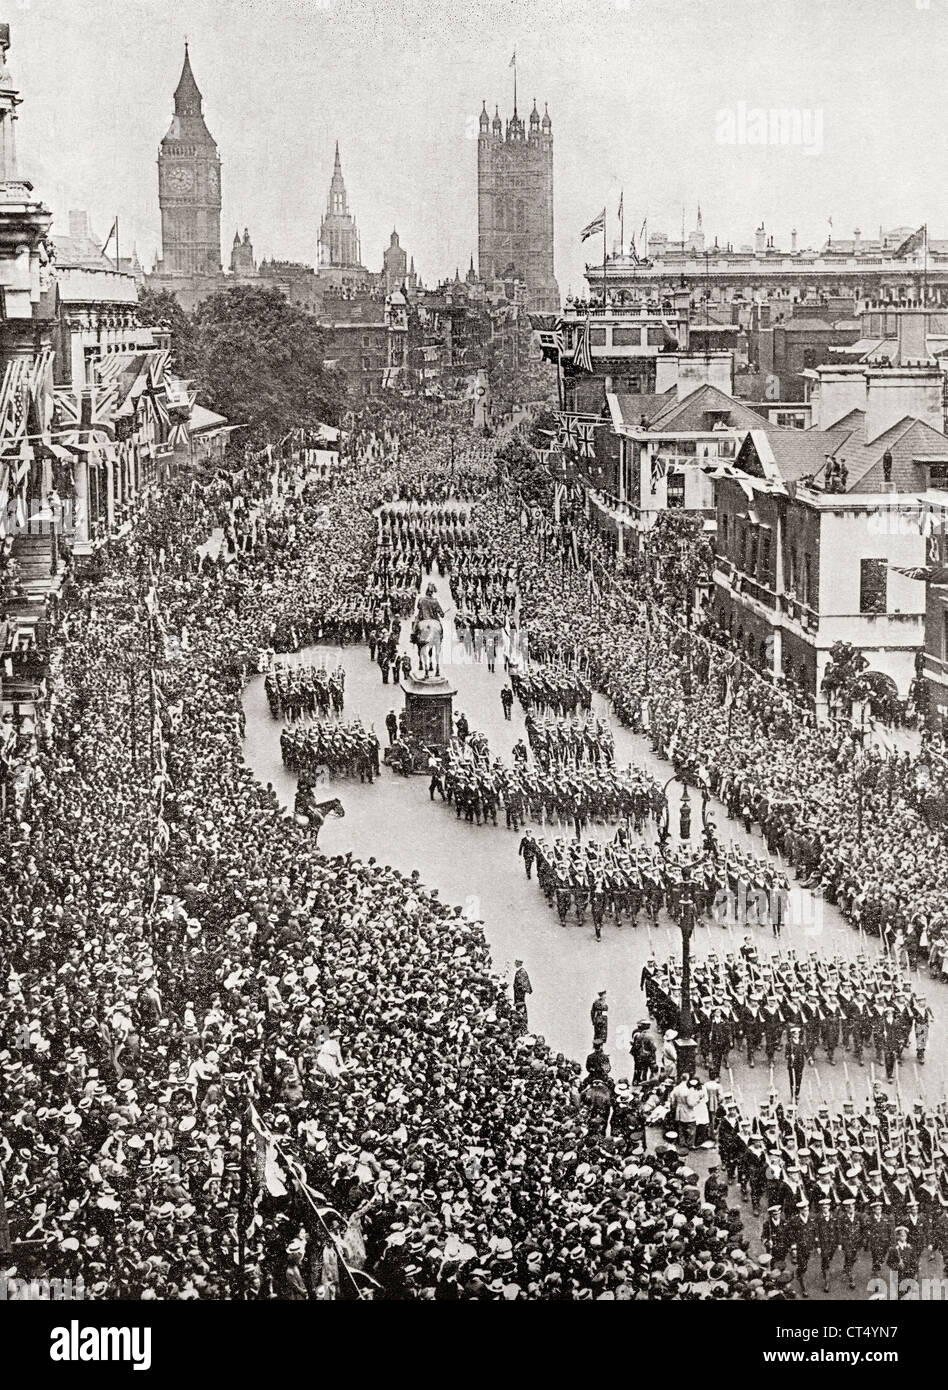 The British Navy in the Victory March of July 19th, 1919 in Whitehall, London, England celebrating the end of World - Stock Image